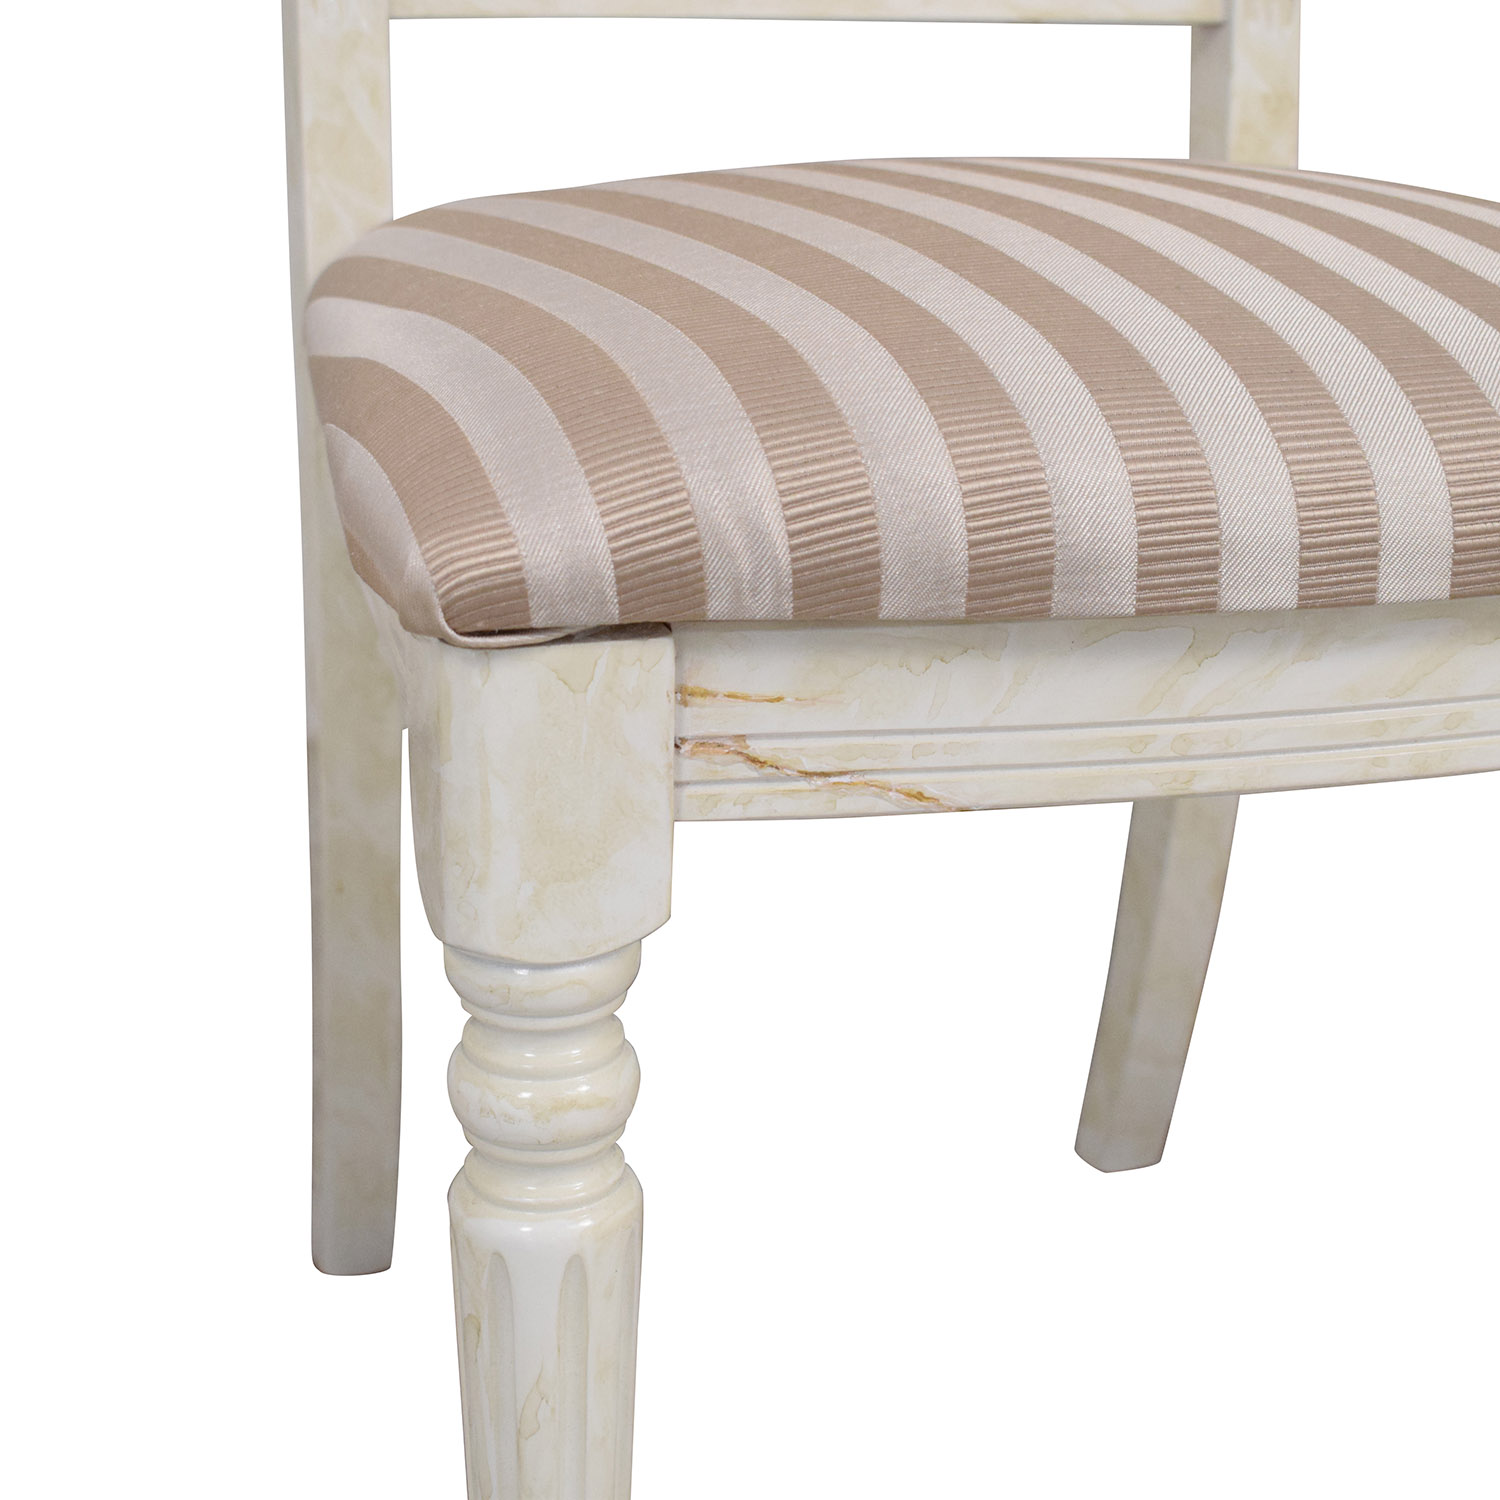 Arredoclassic Arredoclassic Italy Dining Chairs tan & beige